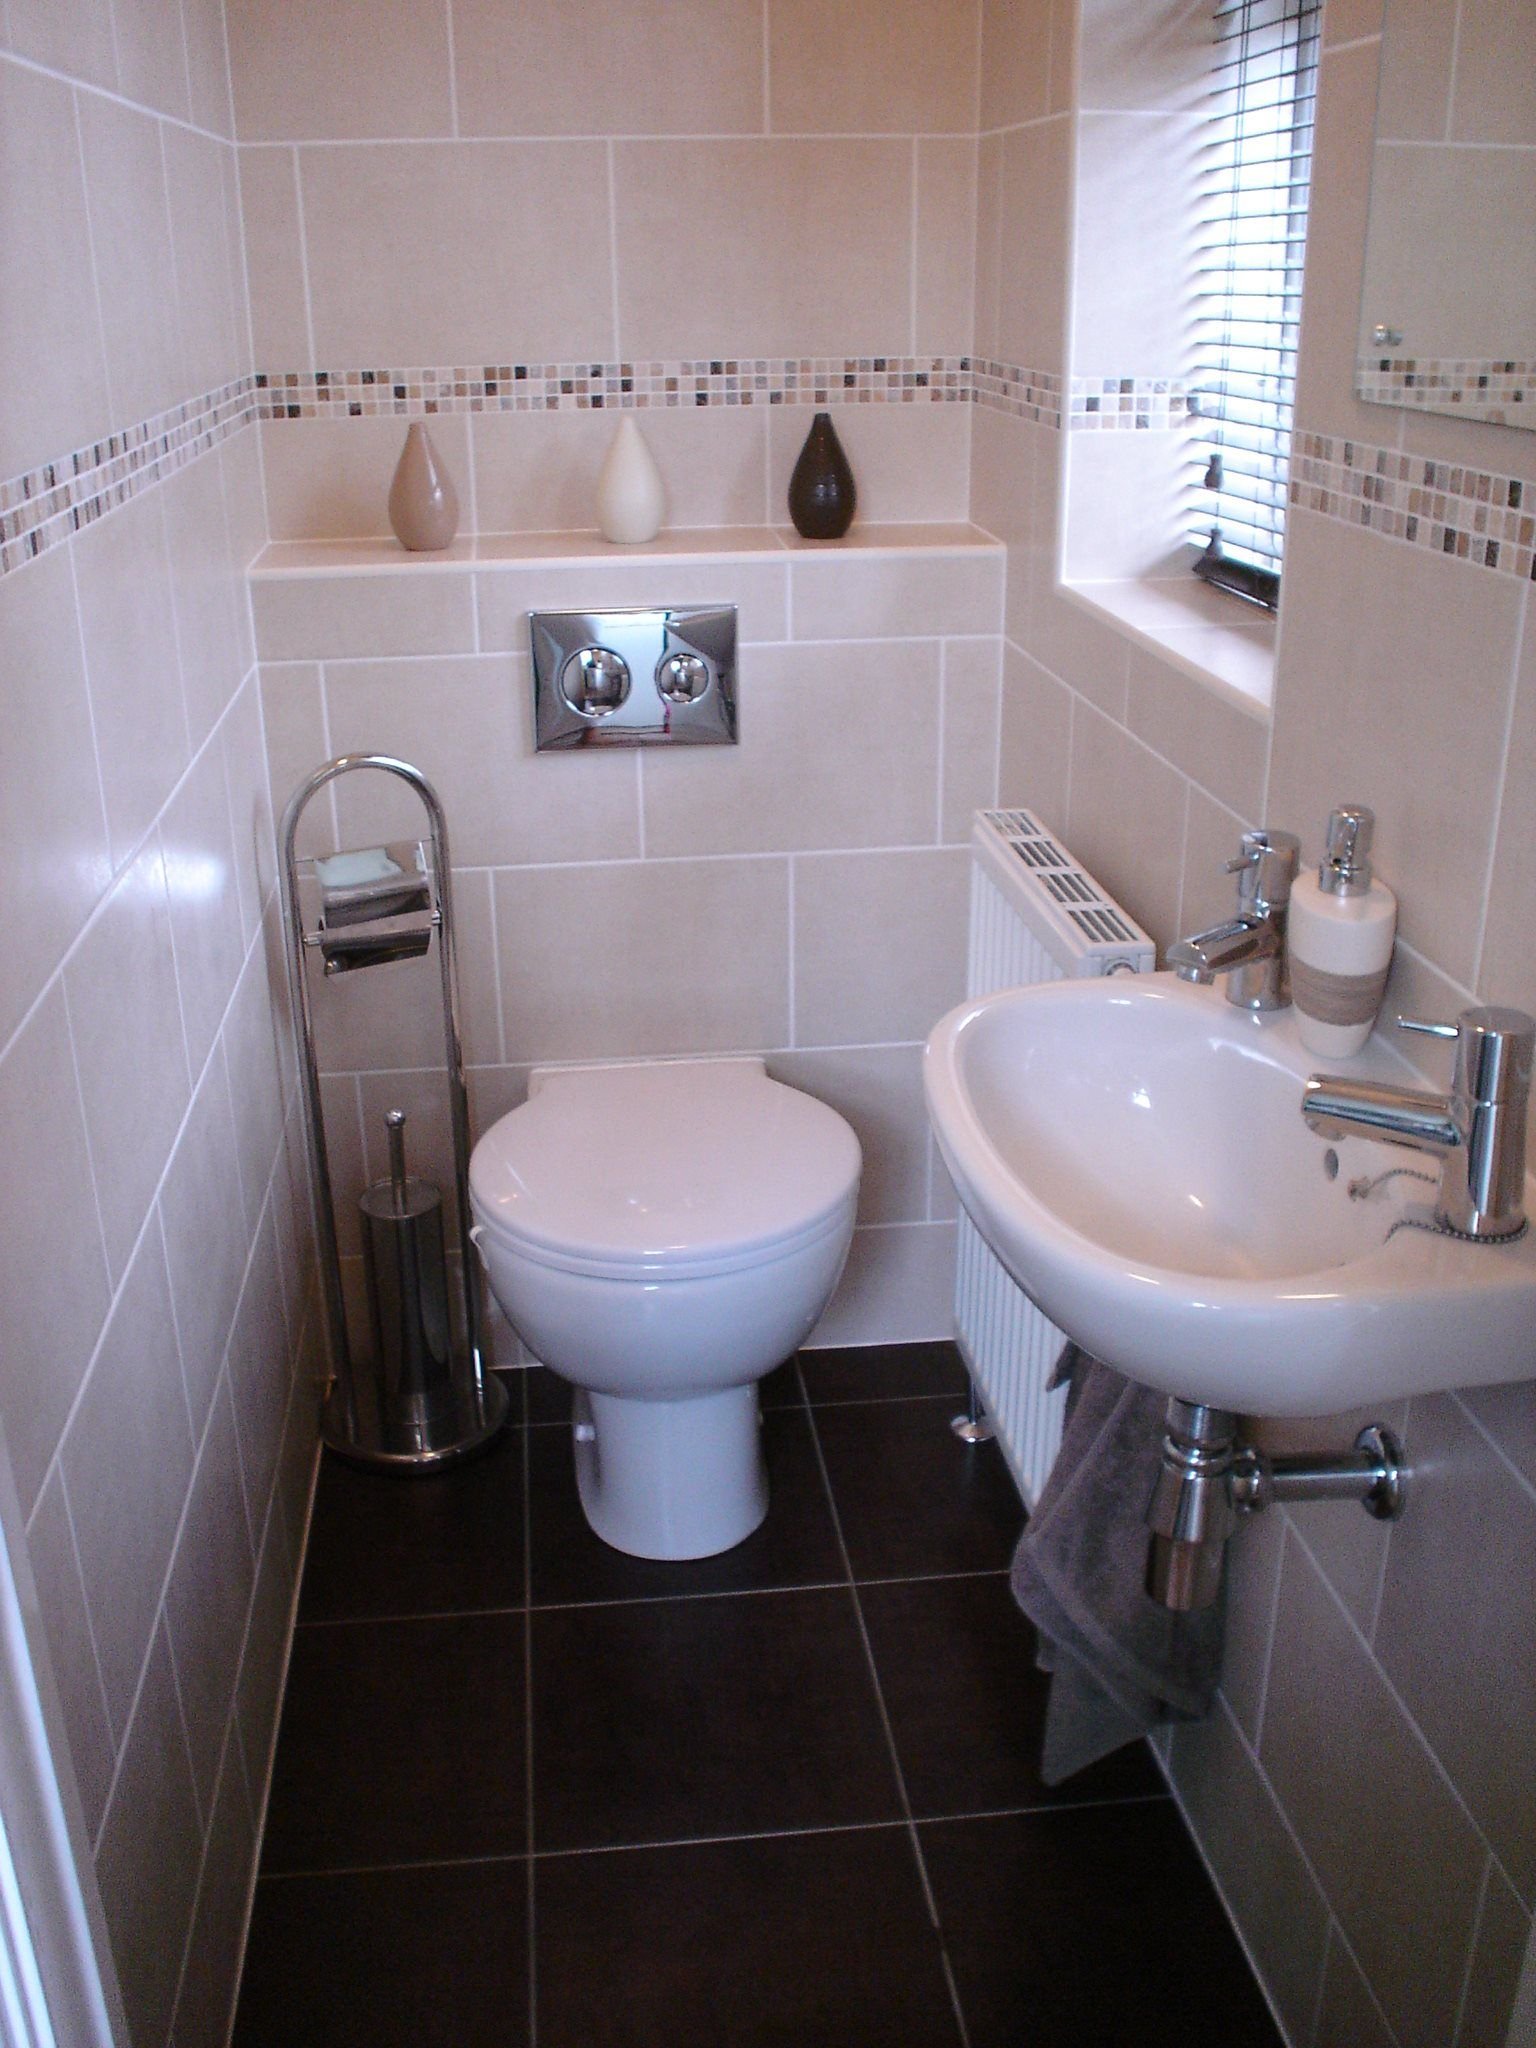 Cloakroom Ideas Images A Cloakroom With Back To Wall Pan And Concealed Cistern